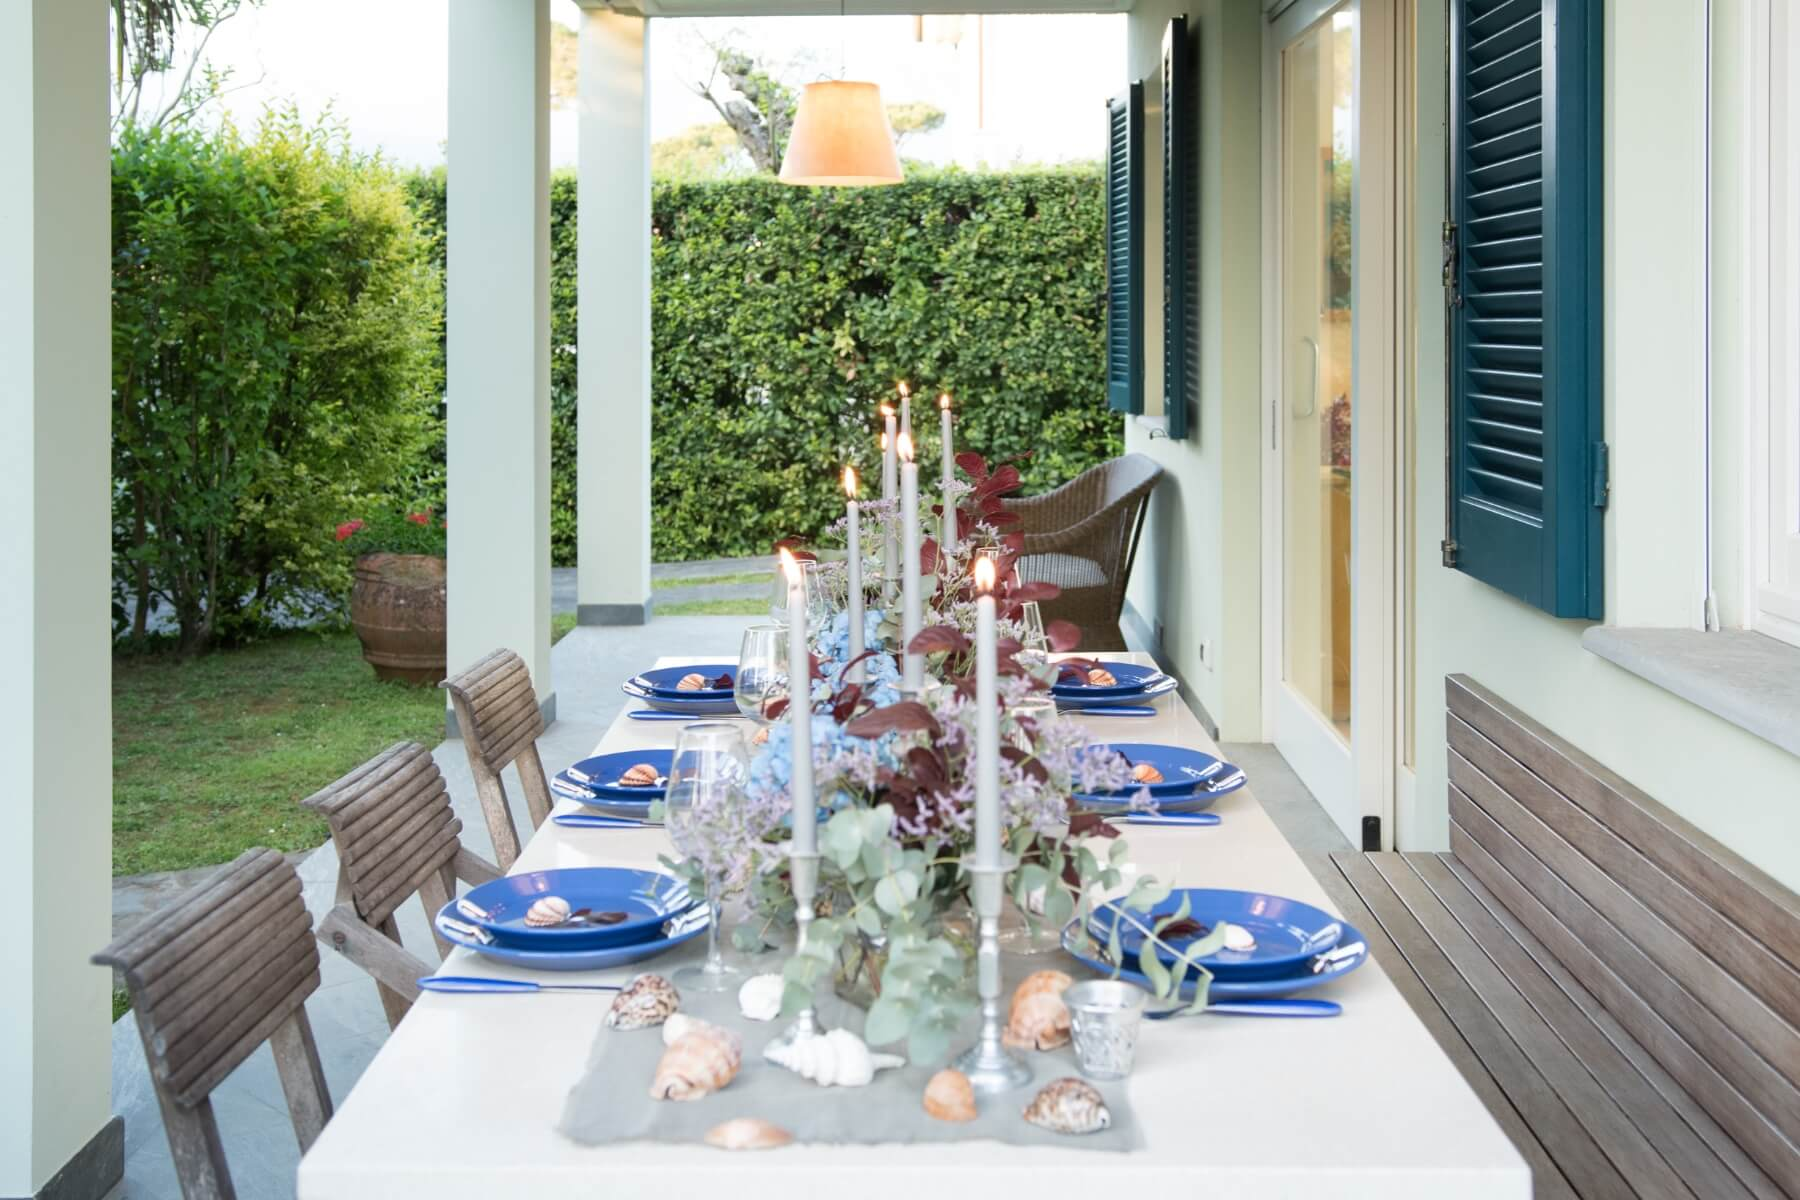 The Villa Italy - Paola Gheis Vacation Rental Consulting